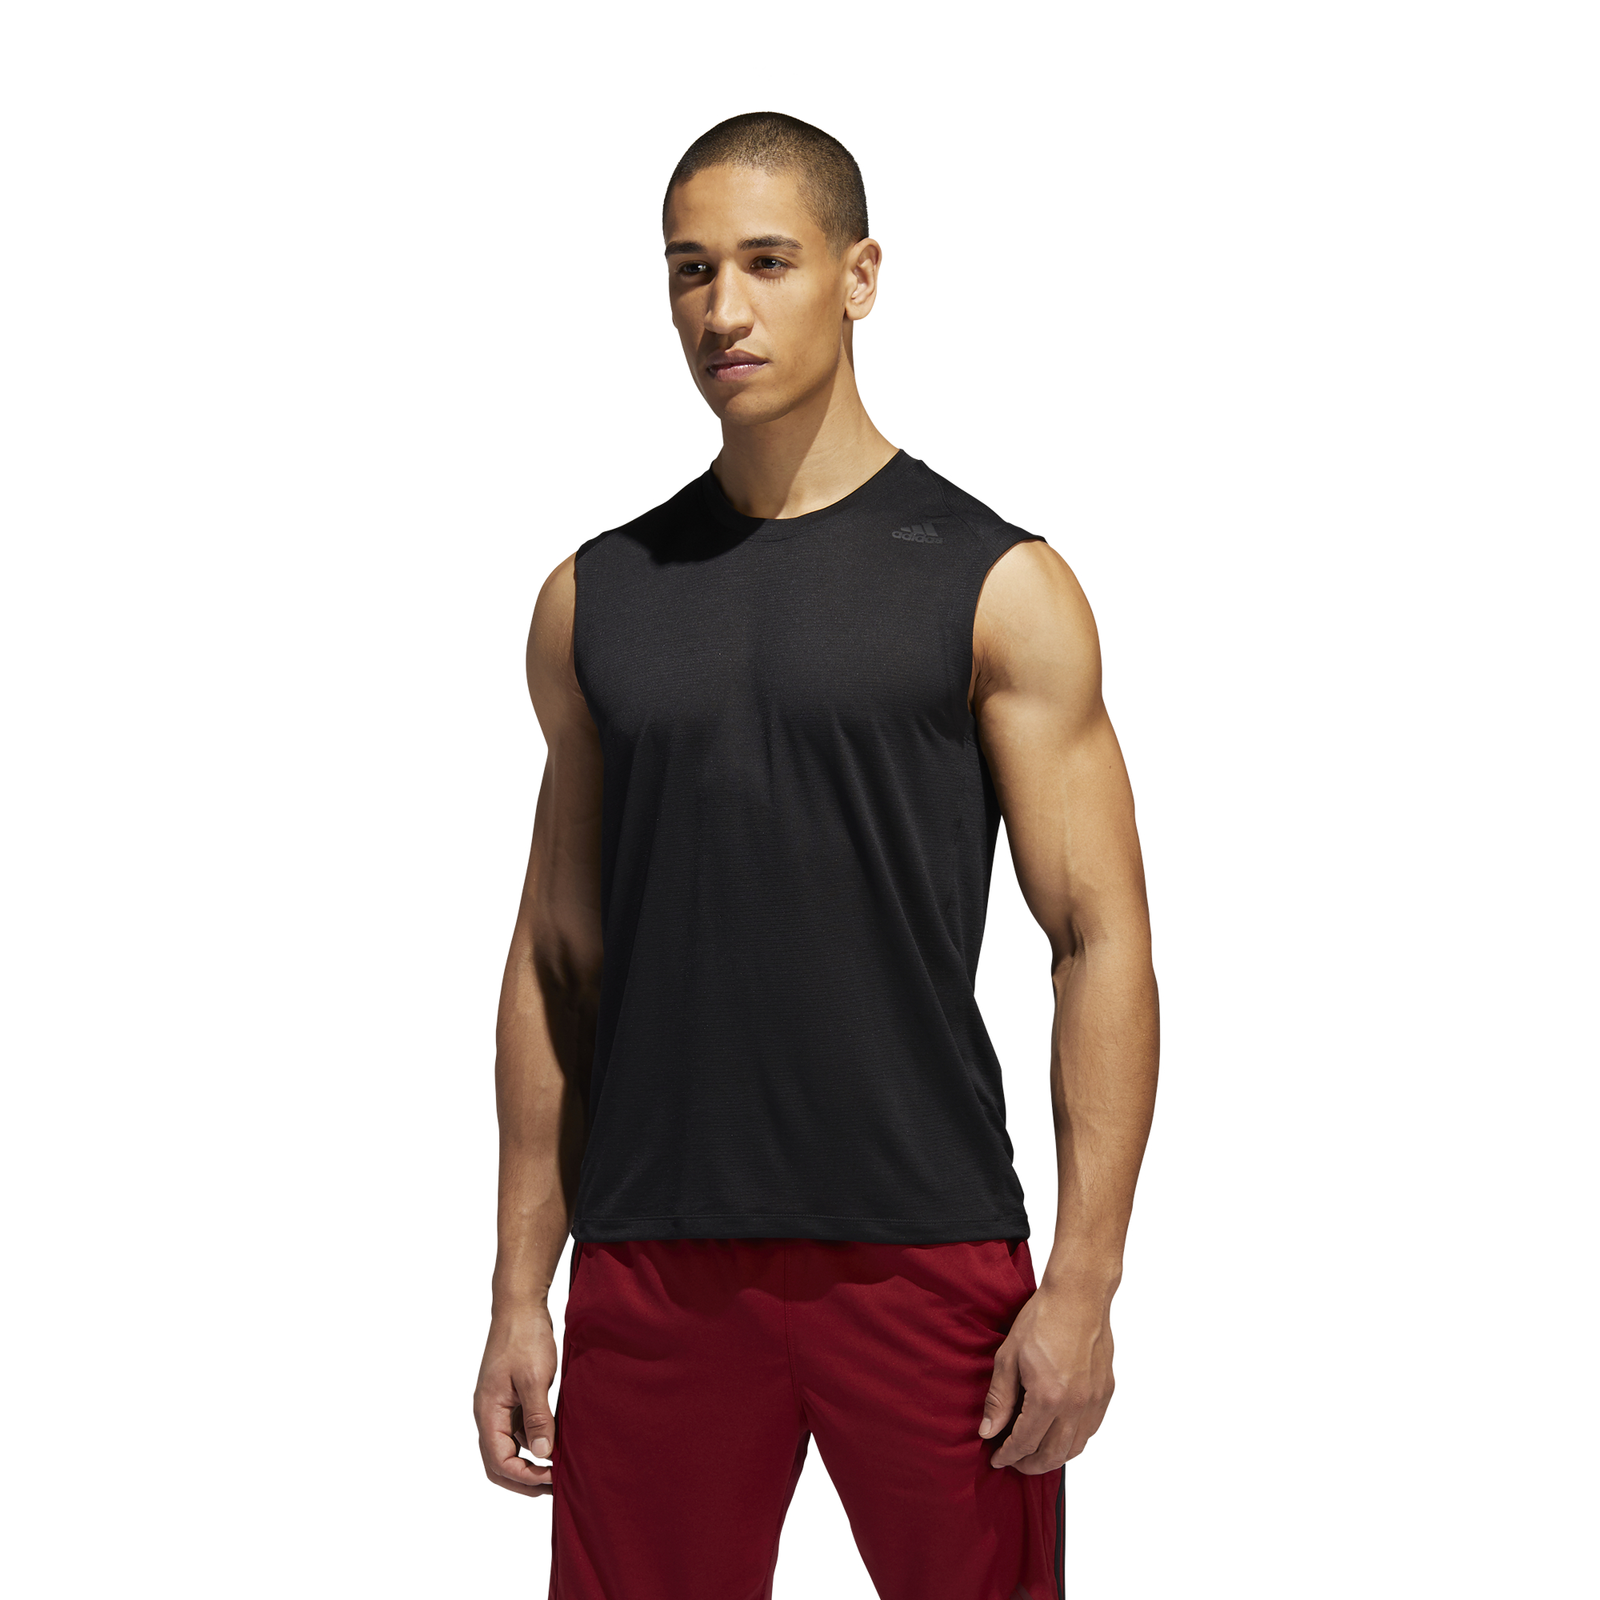 ADIDAS FREELIFT TECH Climacool T Shirt Herren Fitness